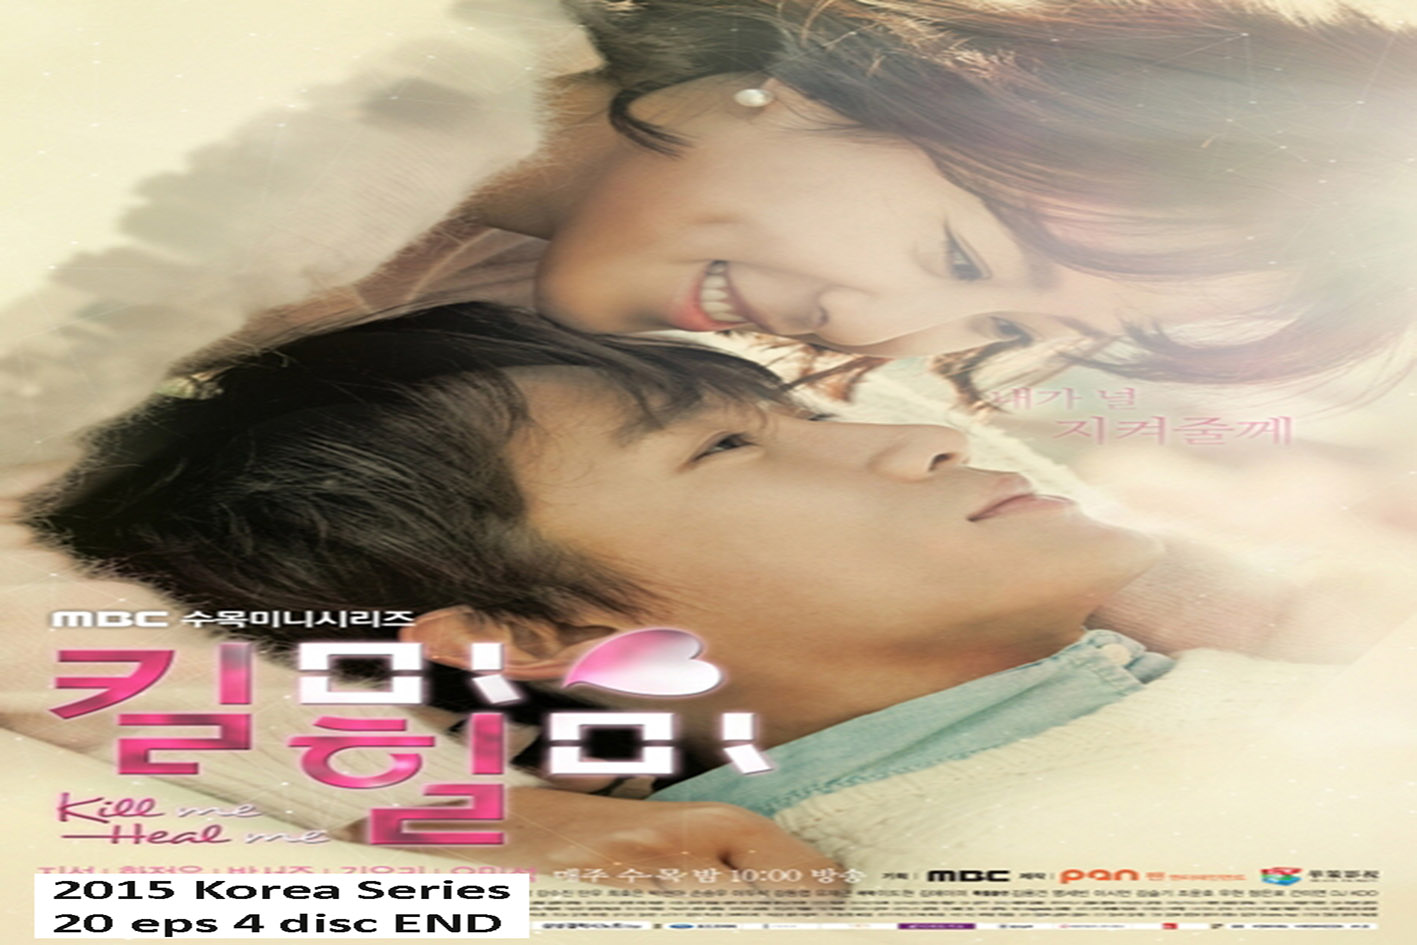 Kill Me Heal Me [2015 Korea Series]